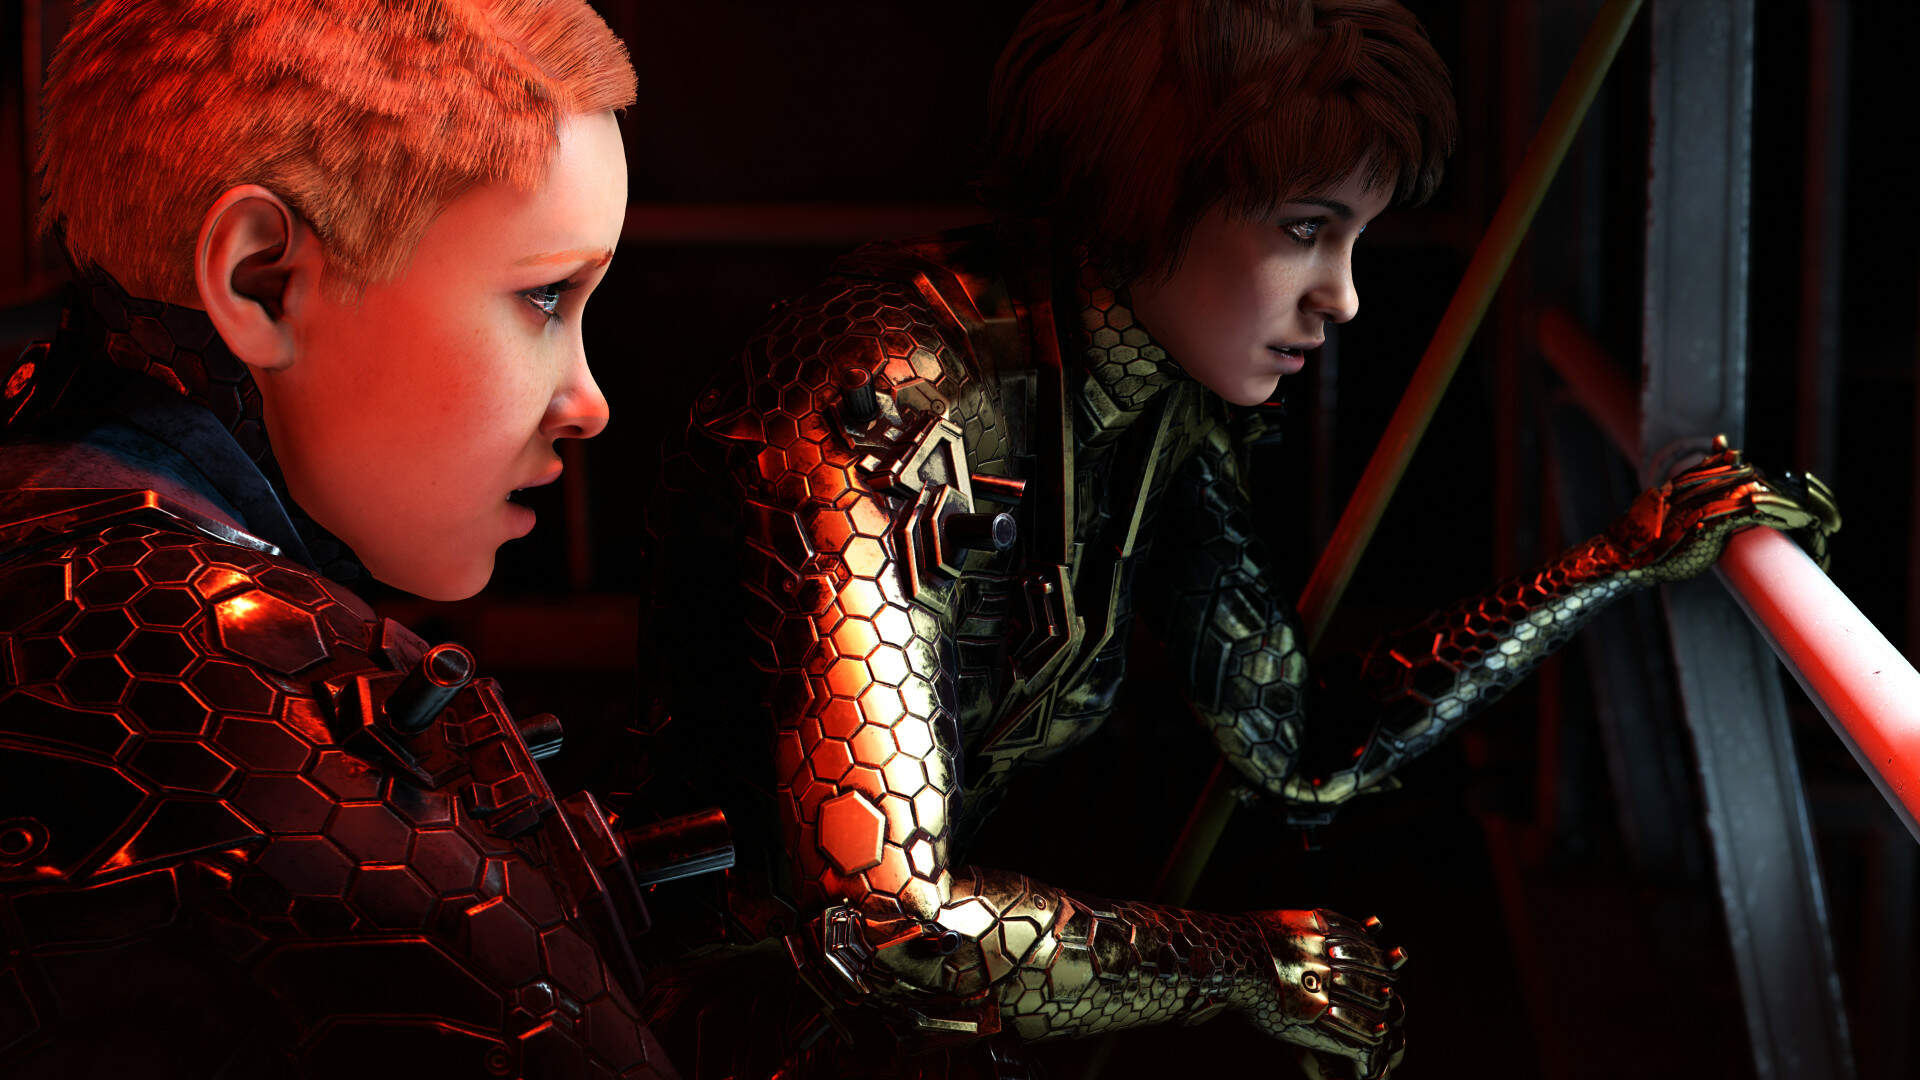 Will Wolfenstein Work As Co-Op? After Hands-On With Wolfenstein: Youngblood, We're Still Unsure